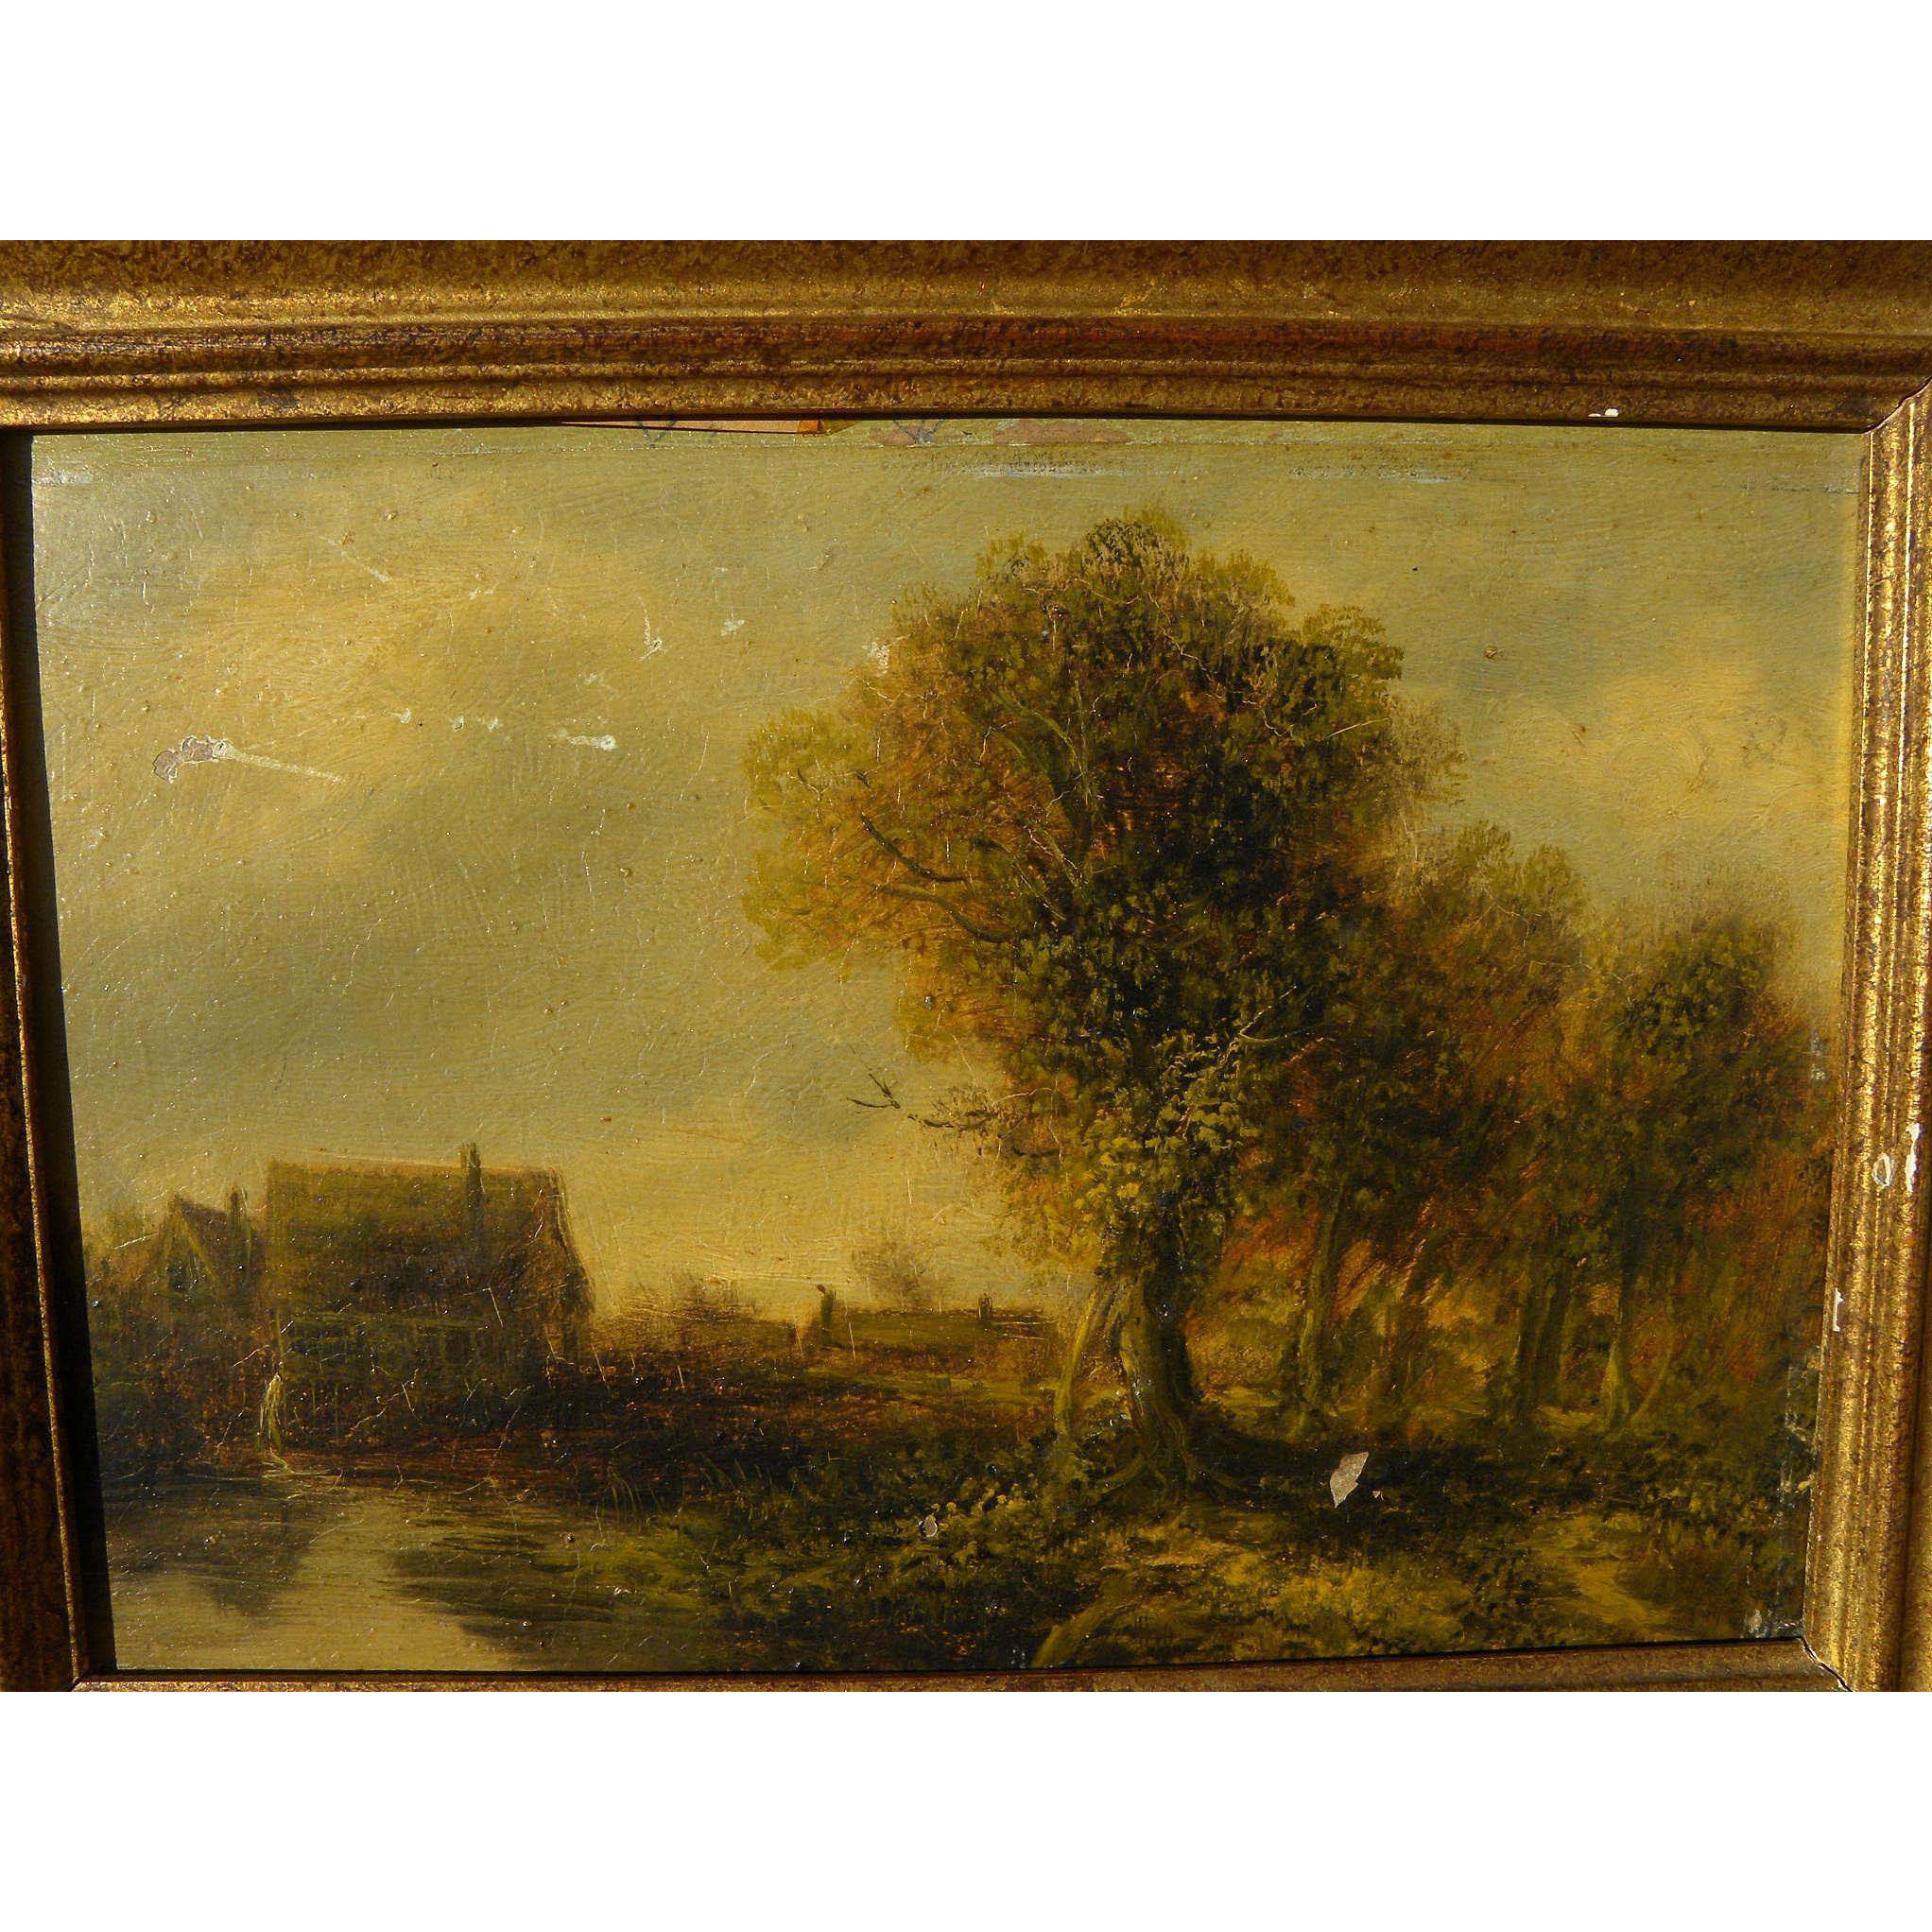 Nineteenth Century Tonalist Landscape Painting After Old